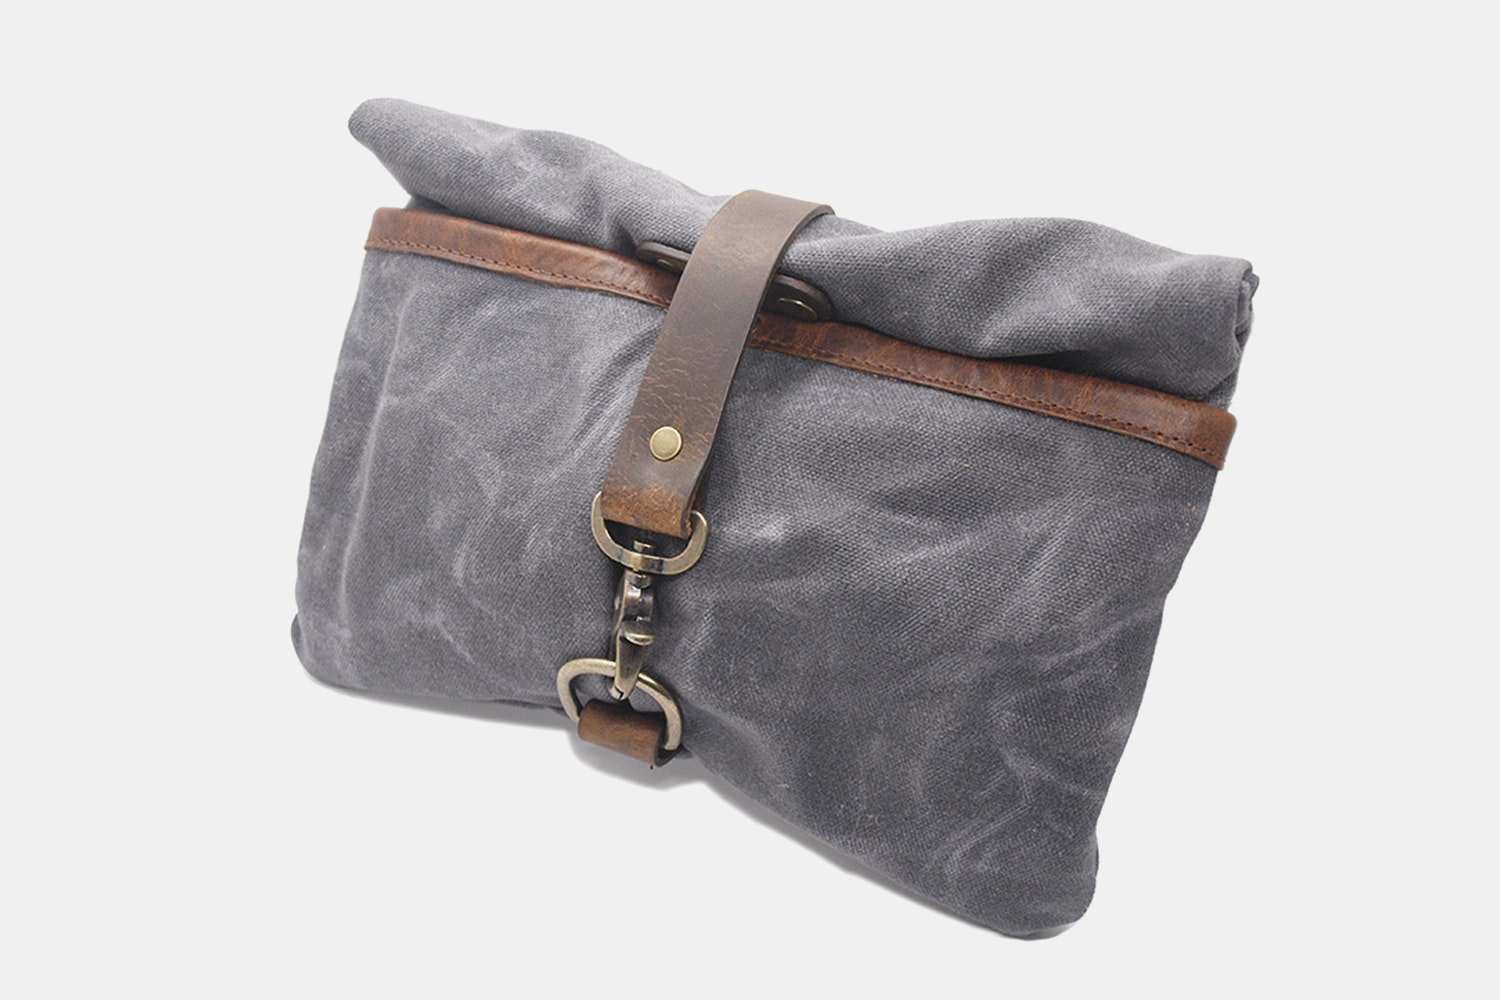 LM Products Roll-Top Dopp Kit